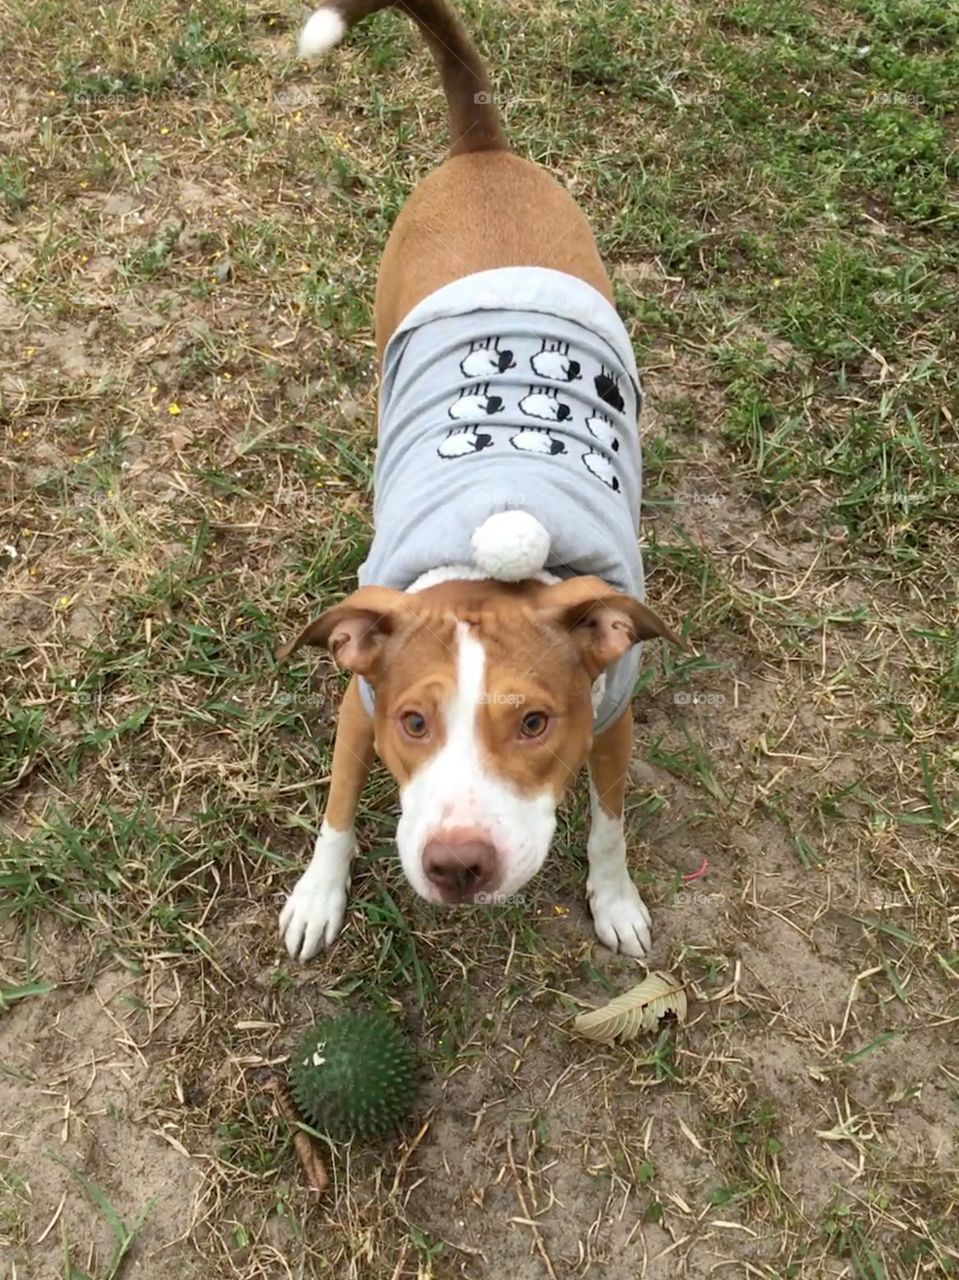 Red nose pitbull wearing a sweater rescue field